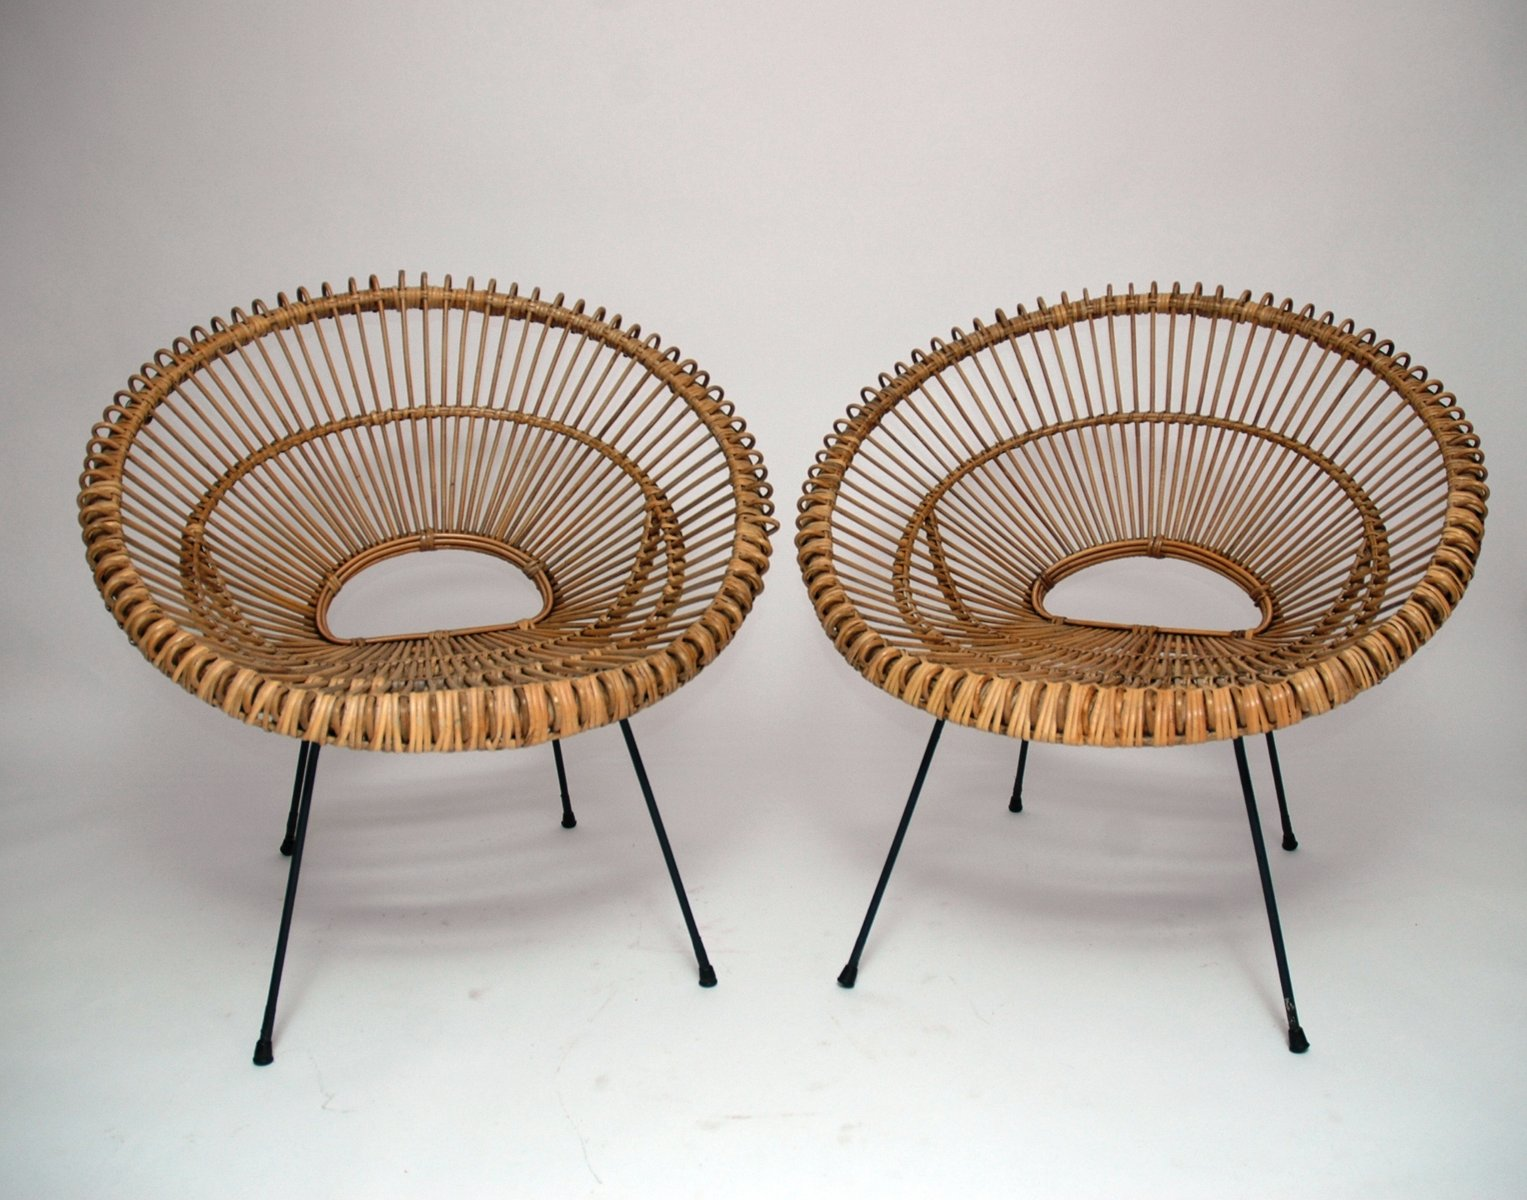 Rattan Chairs French Rattan Chairs 1960s Set Of 2